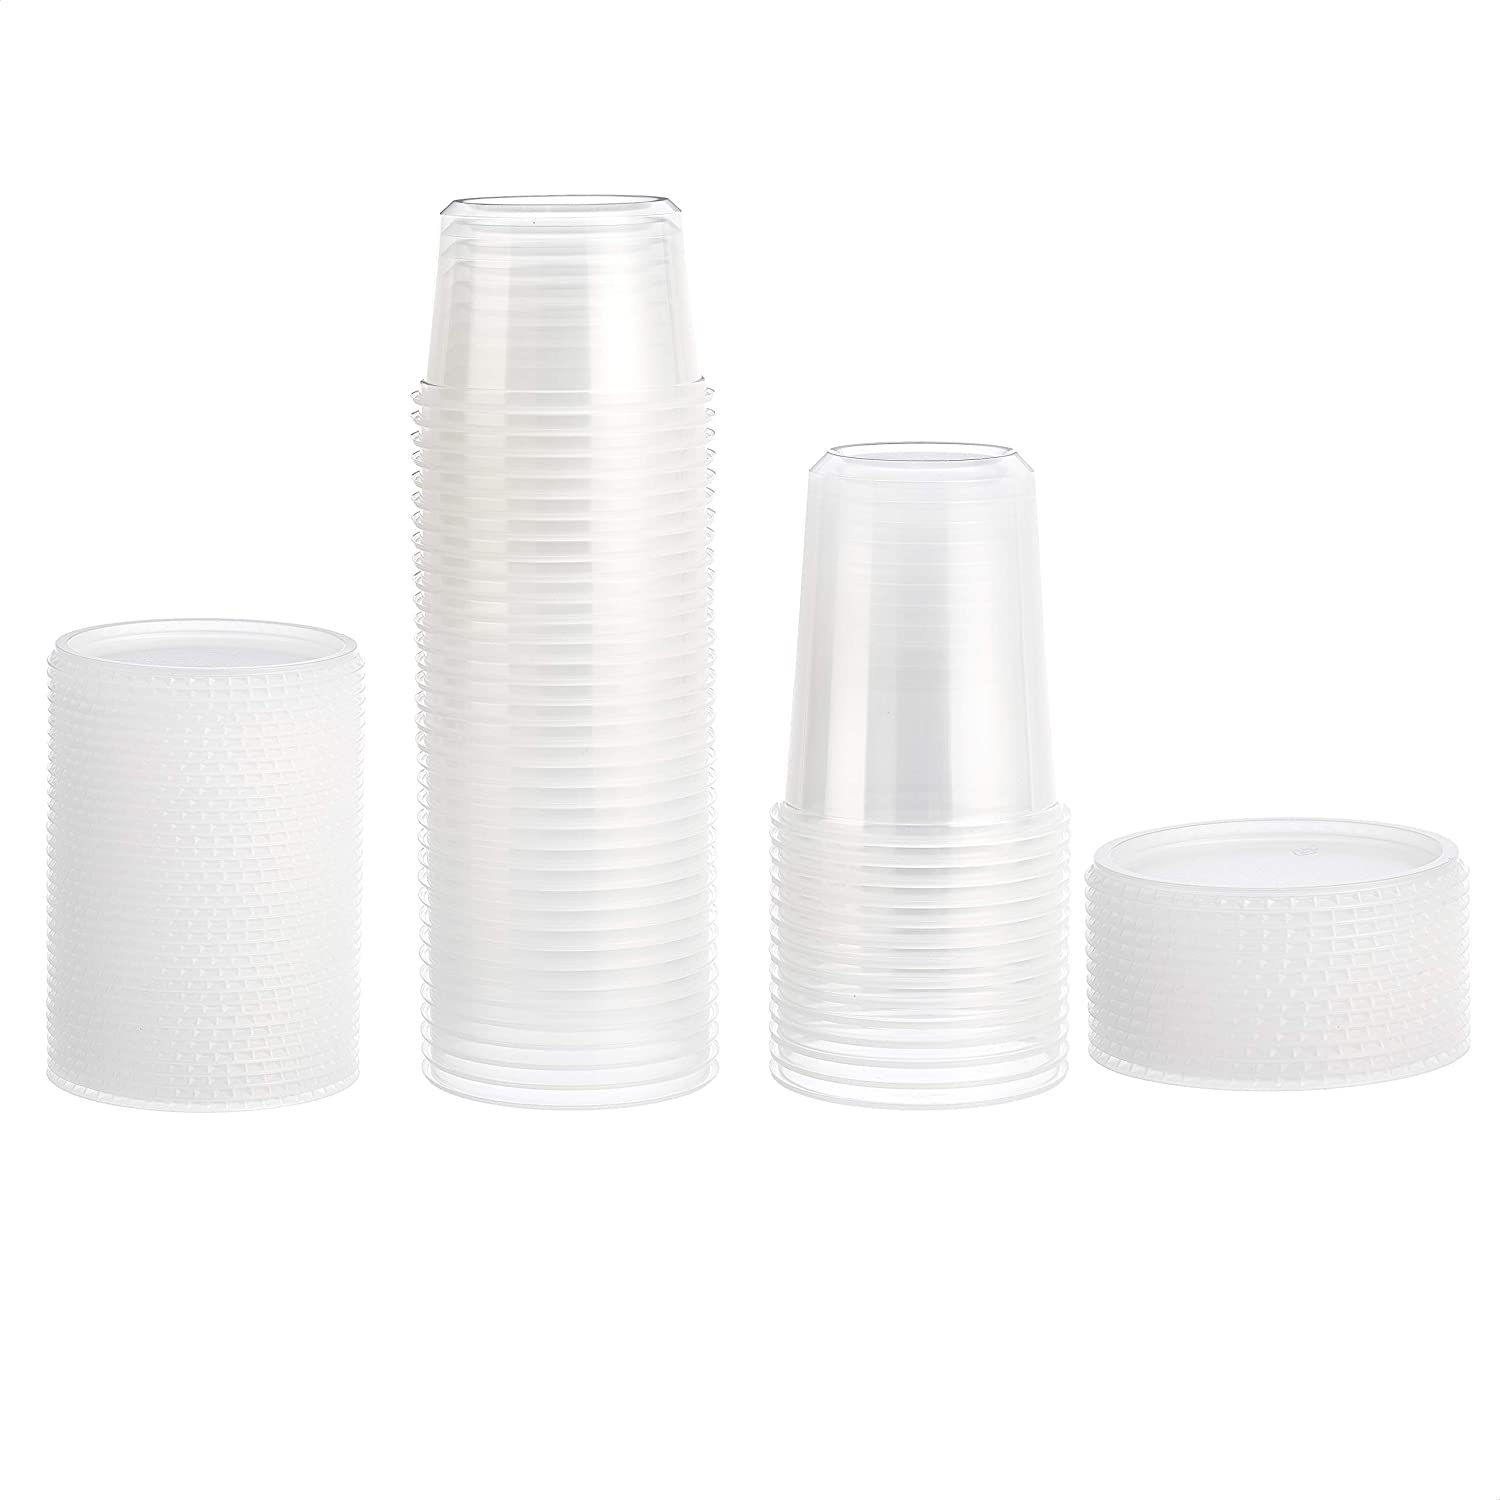 AmazonCommercial - HL0080 Deli Containers with Lids, Pack of 50, 18-8oz; 18-16oz; 14-32oz clear